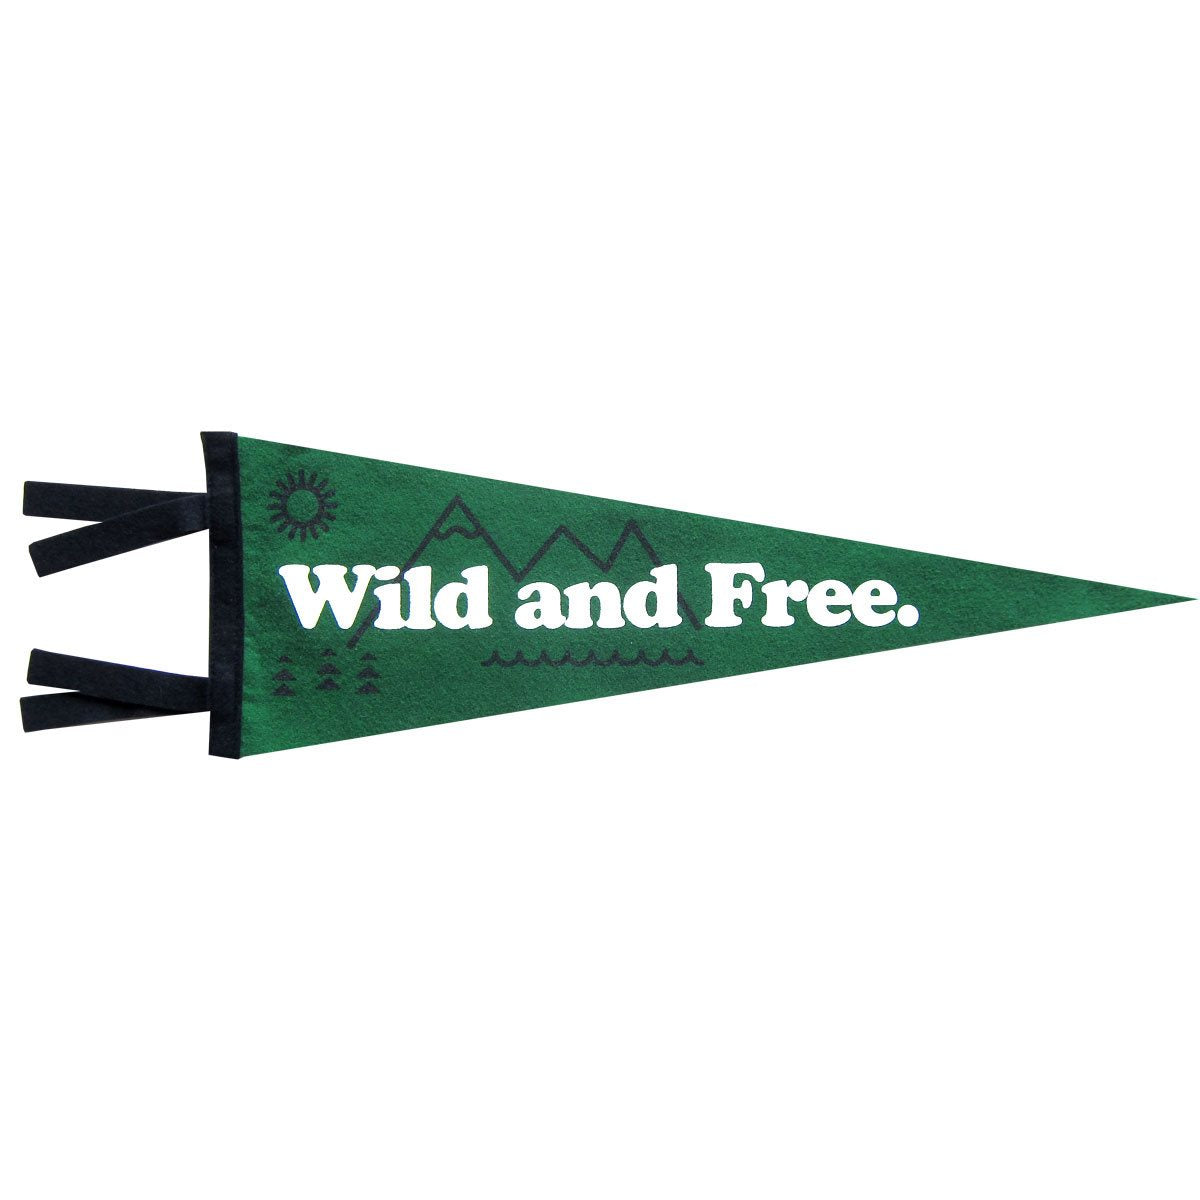 vintage style felt pennant banner flag wild and free